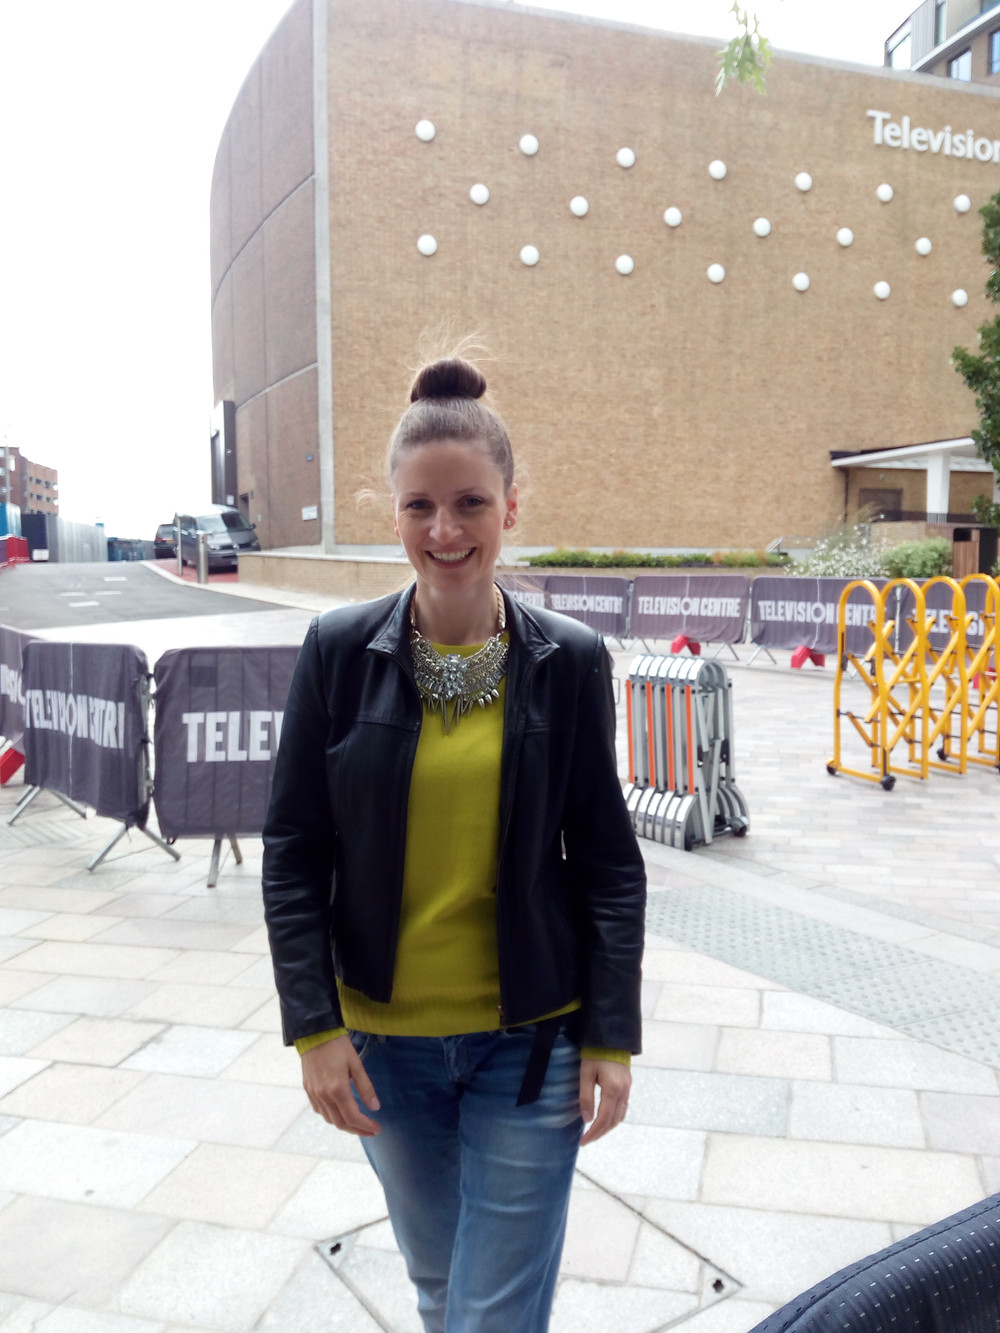 Me at the television centre for The Great British Bake Off